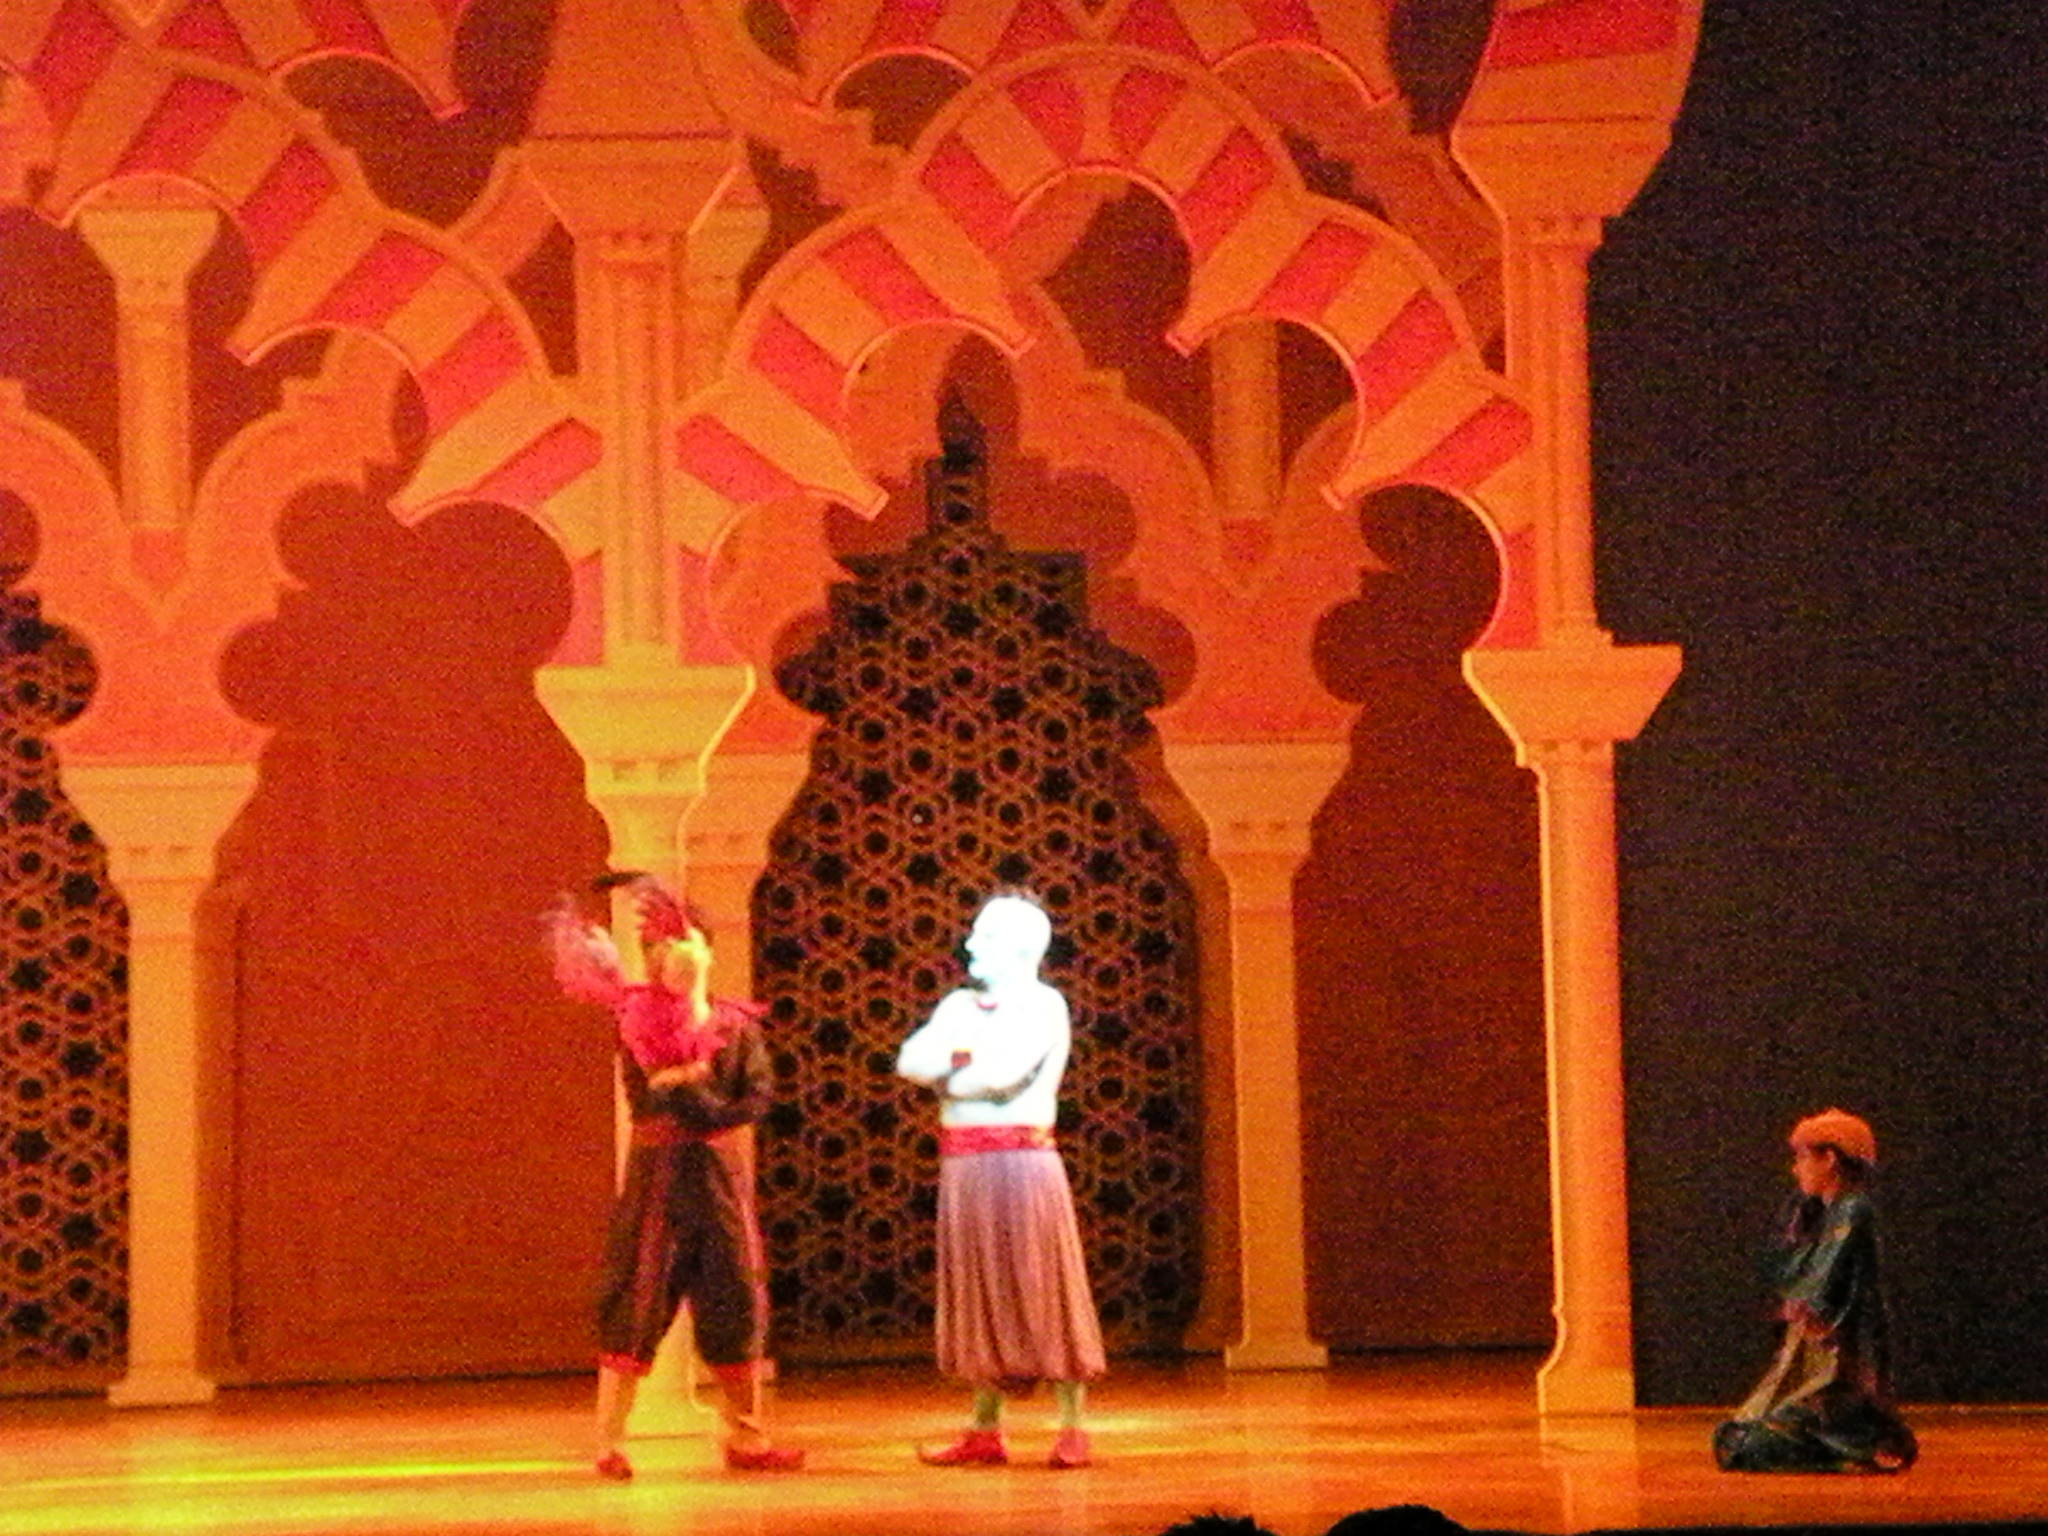 After Jafar is captured in the lamp, Genie turns his attention to Iago.